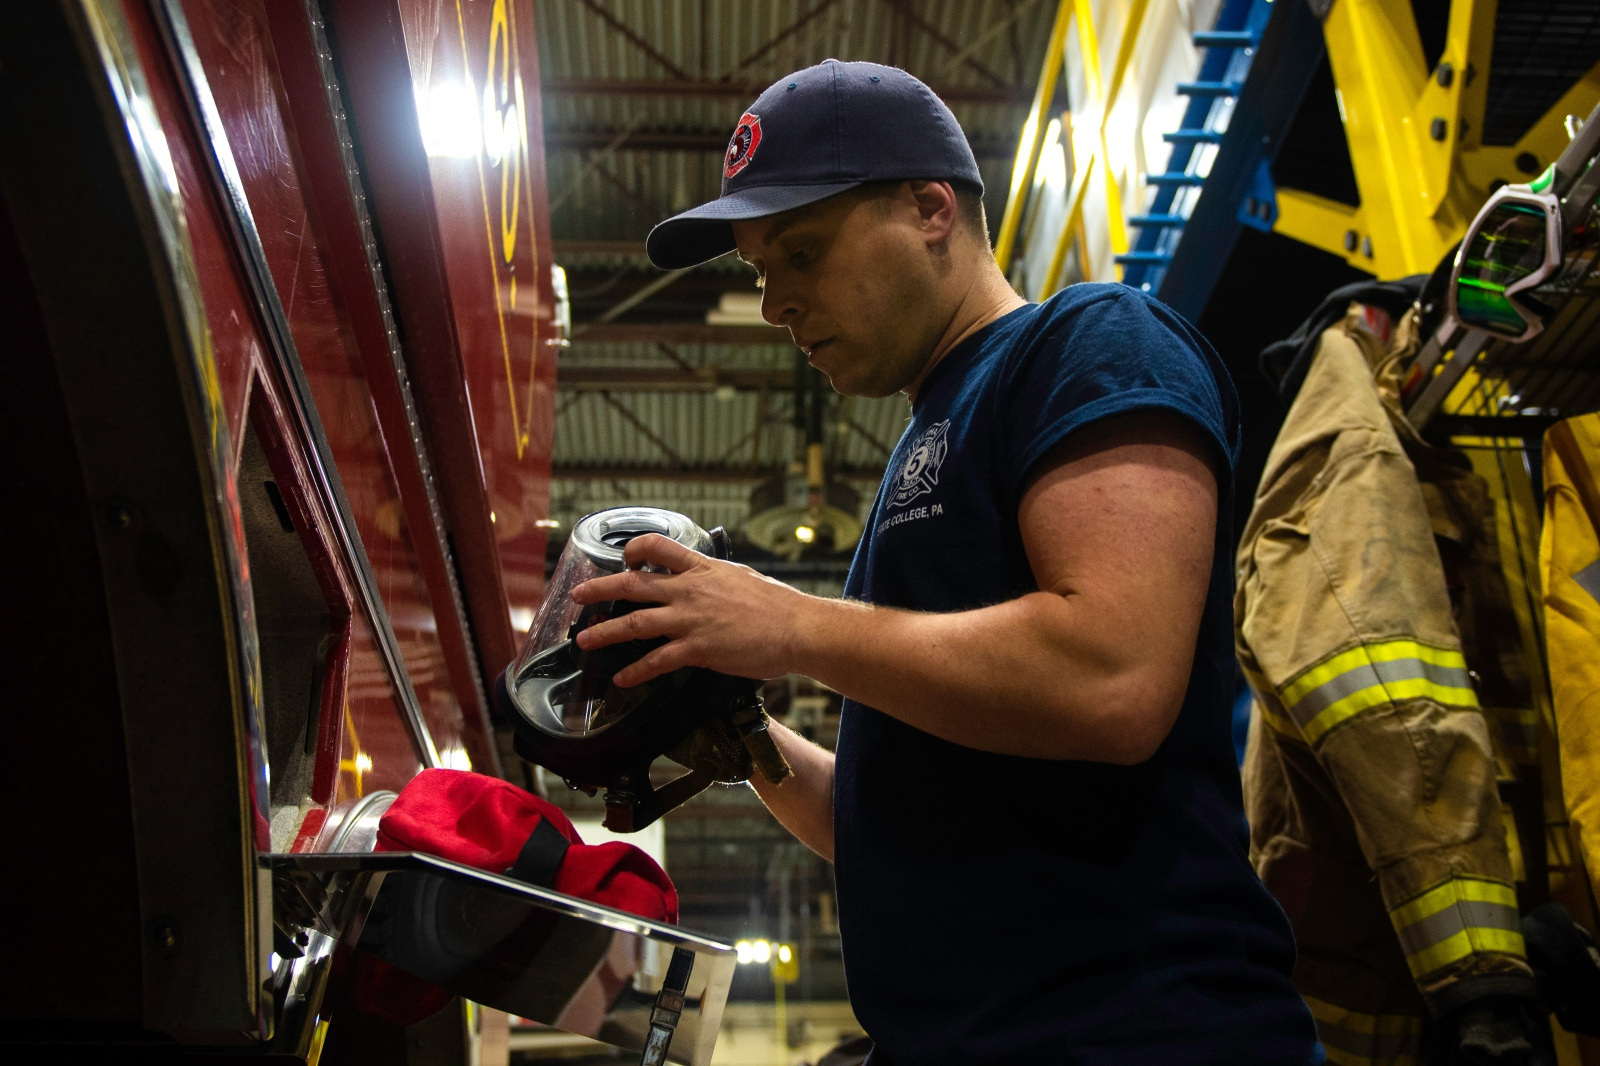 Christophe Cheroret checks a smoke helmet at Alpha Volunteer Fire Department, Monday, April 9, 2018, in State College, Pa. He had a training session each Monday as a volunteer firefighter.